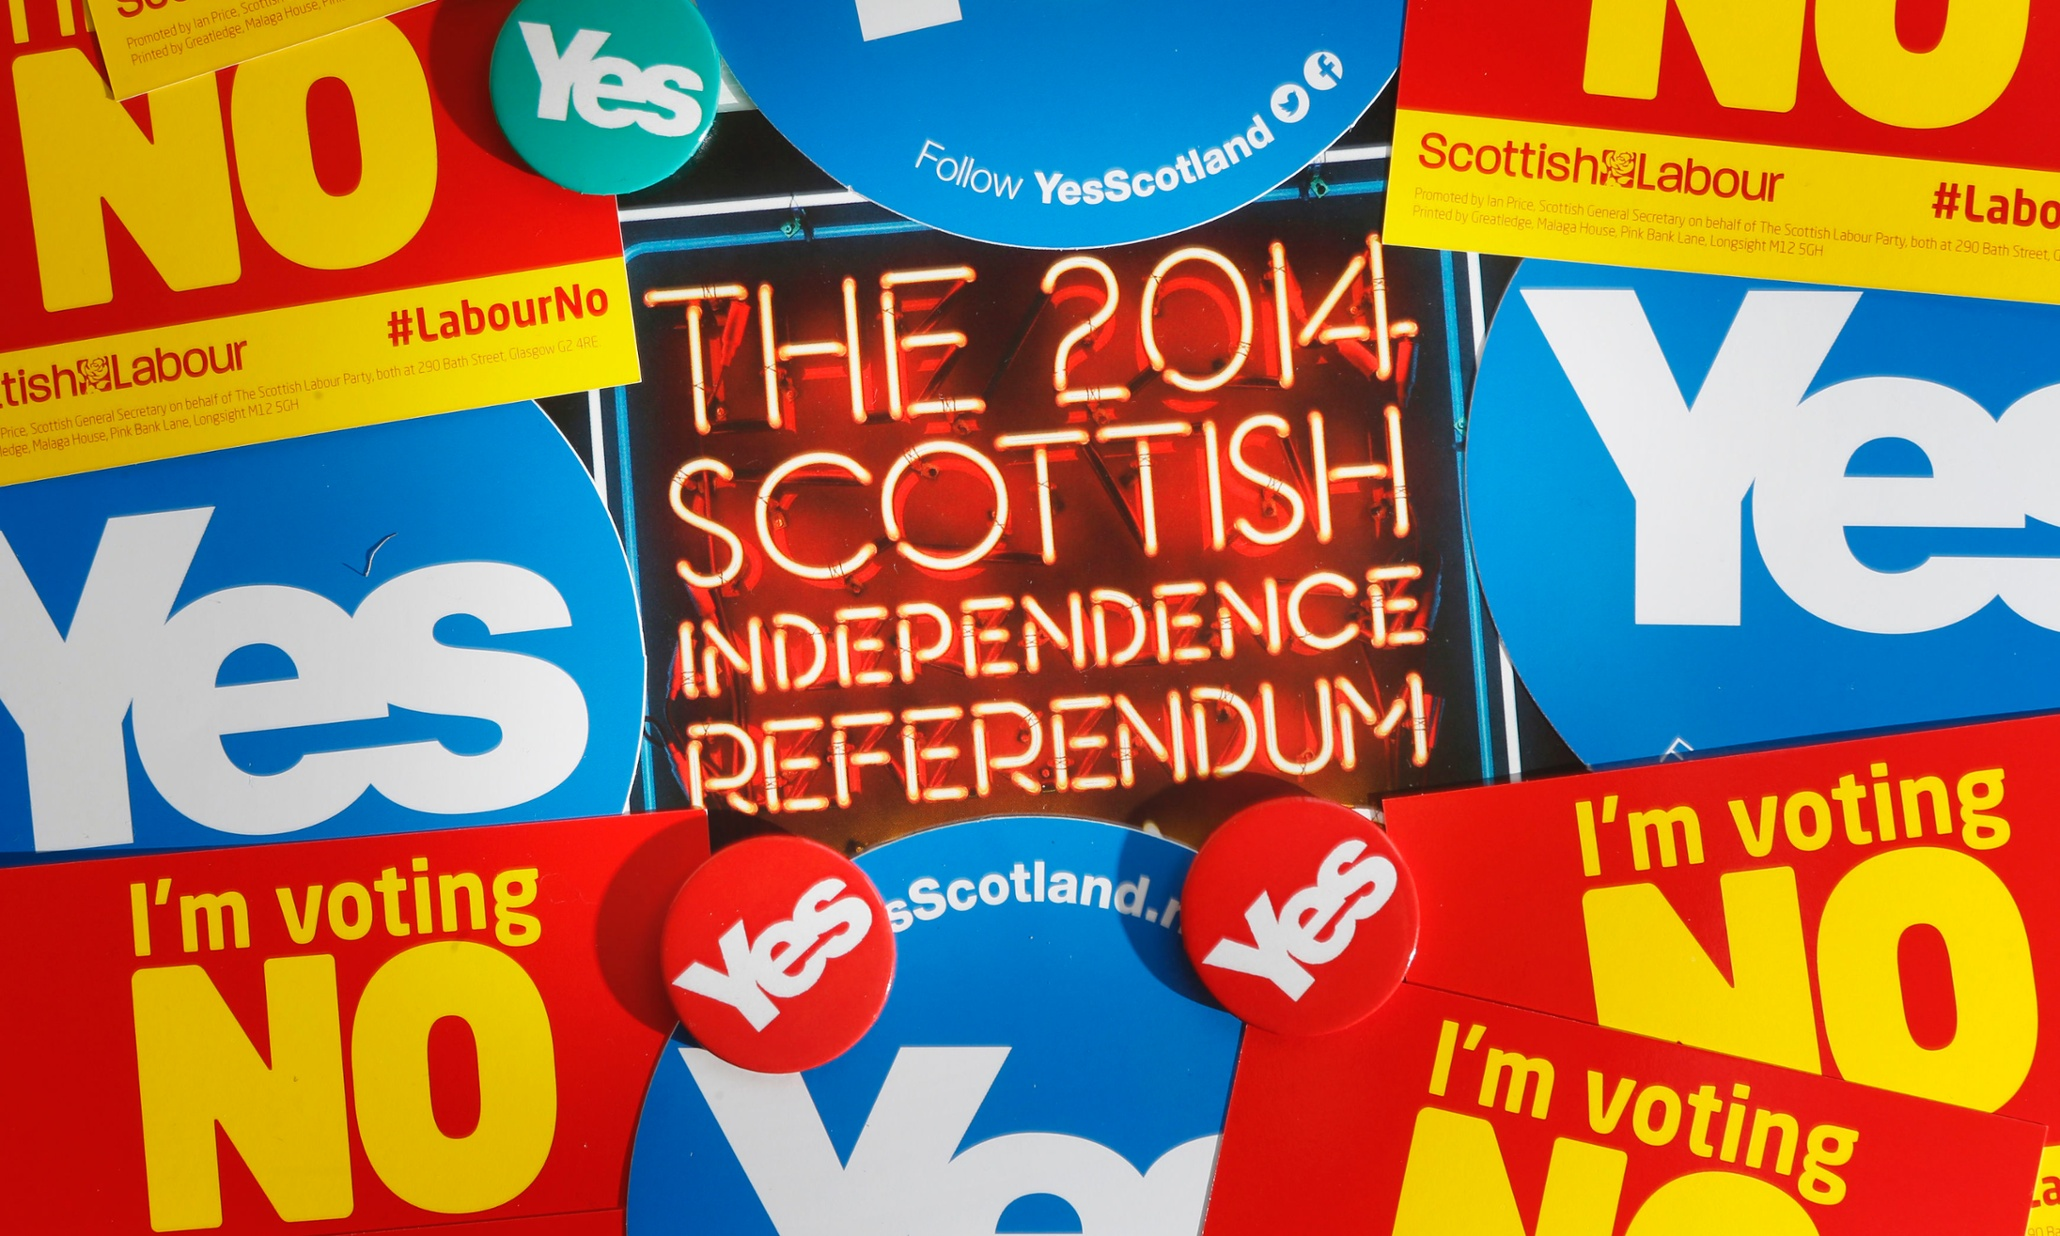 scottish independence and the referendum Scottish independence referendum, 2014 a referendum on whether scotland should be an independent country will take place on thursday 18 september 2014 following an agreement between the scottish government and the united kingdom government, the scottish independence referendum bill, setting out the arrangements for this referendum.